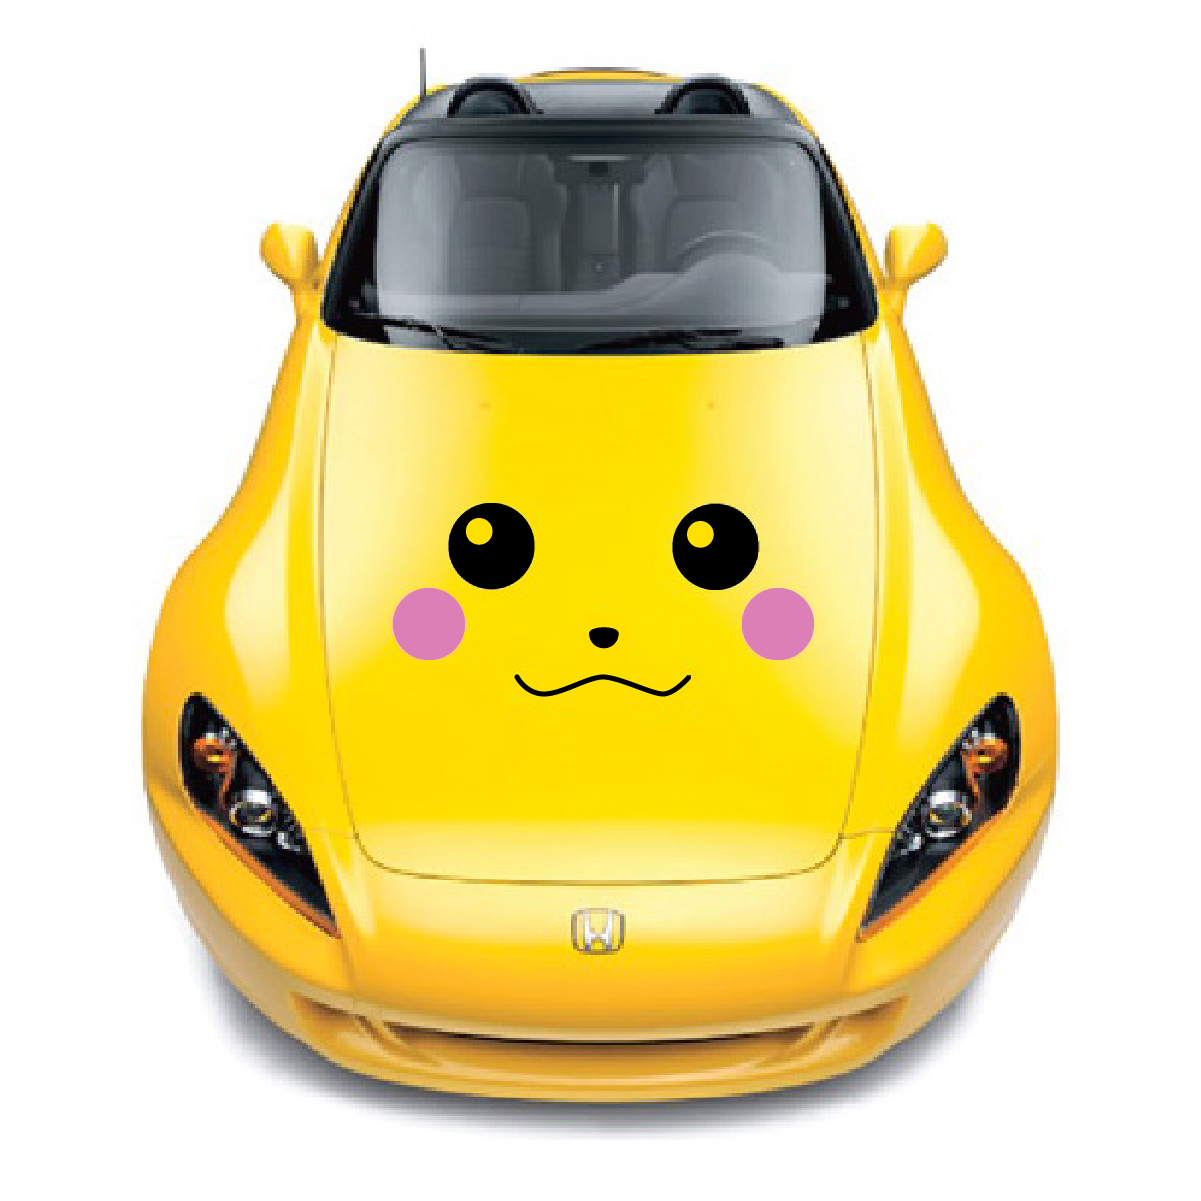 Pikachu Car Decals The Decal Guru - Design decals for cars